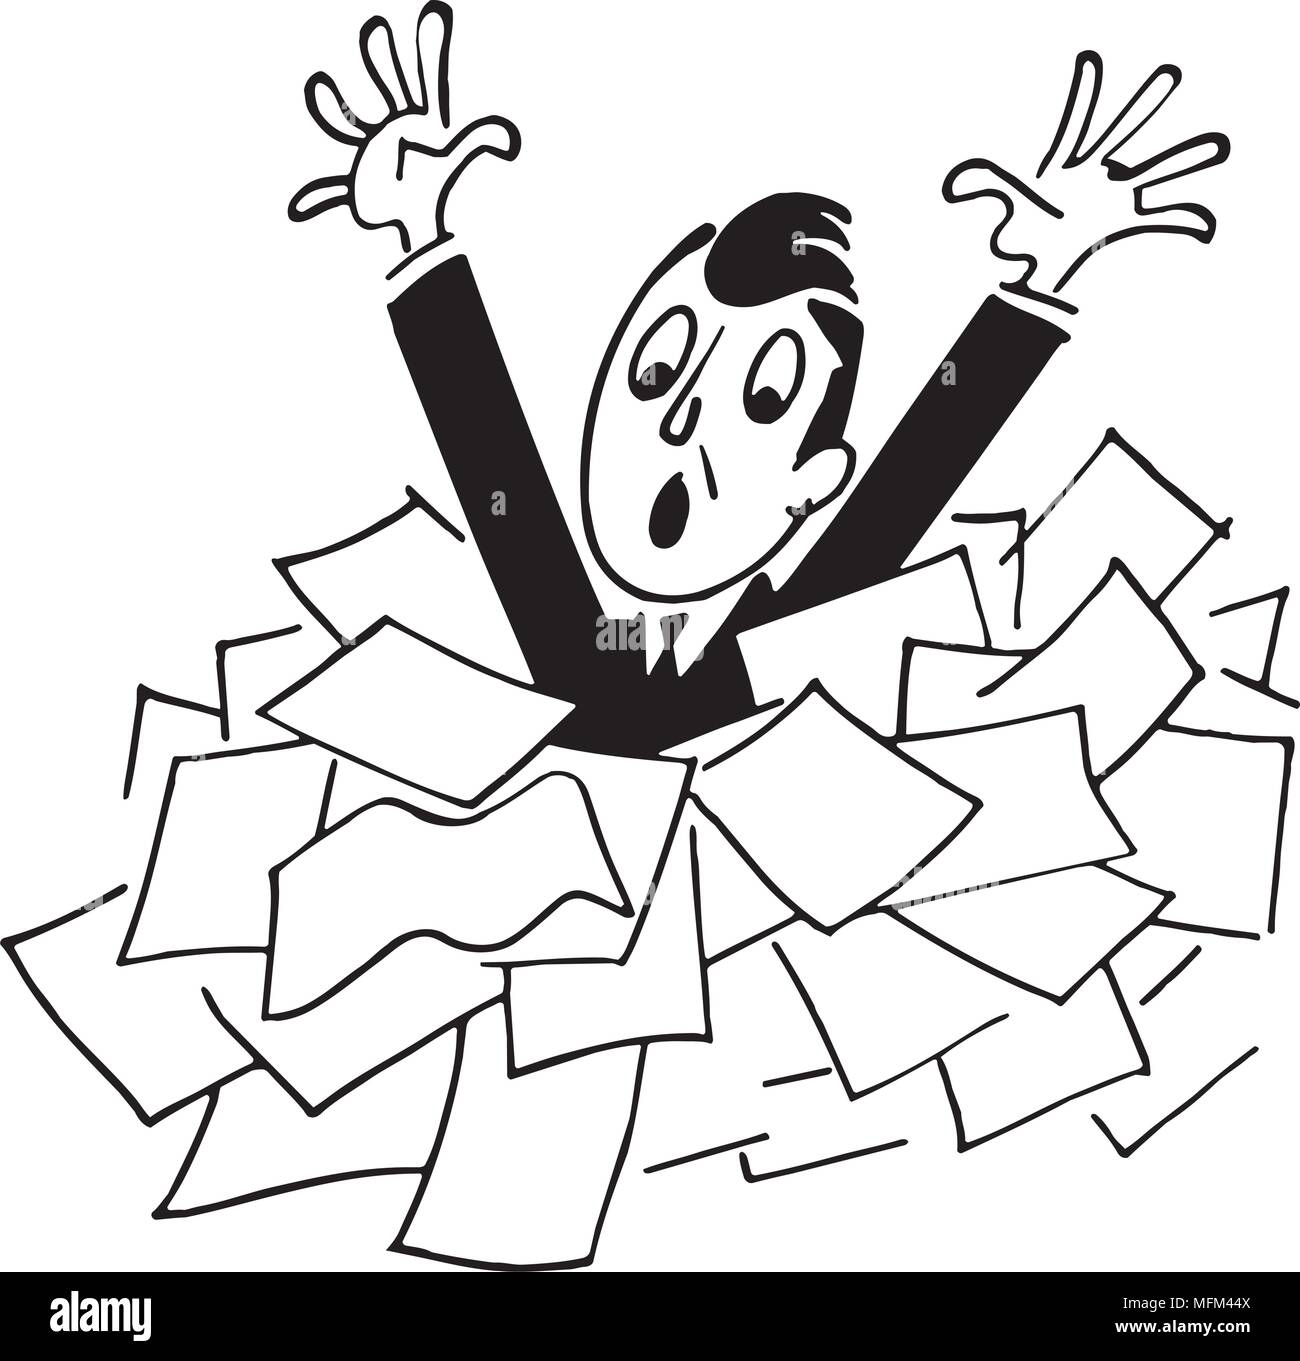 man drowning in papers - retro clipart illustration stock vector art